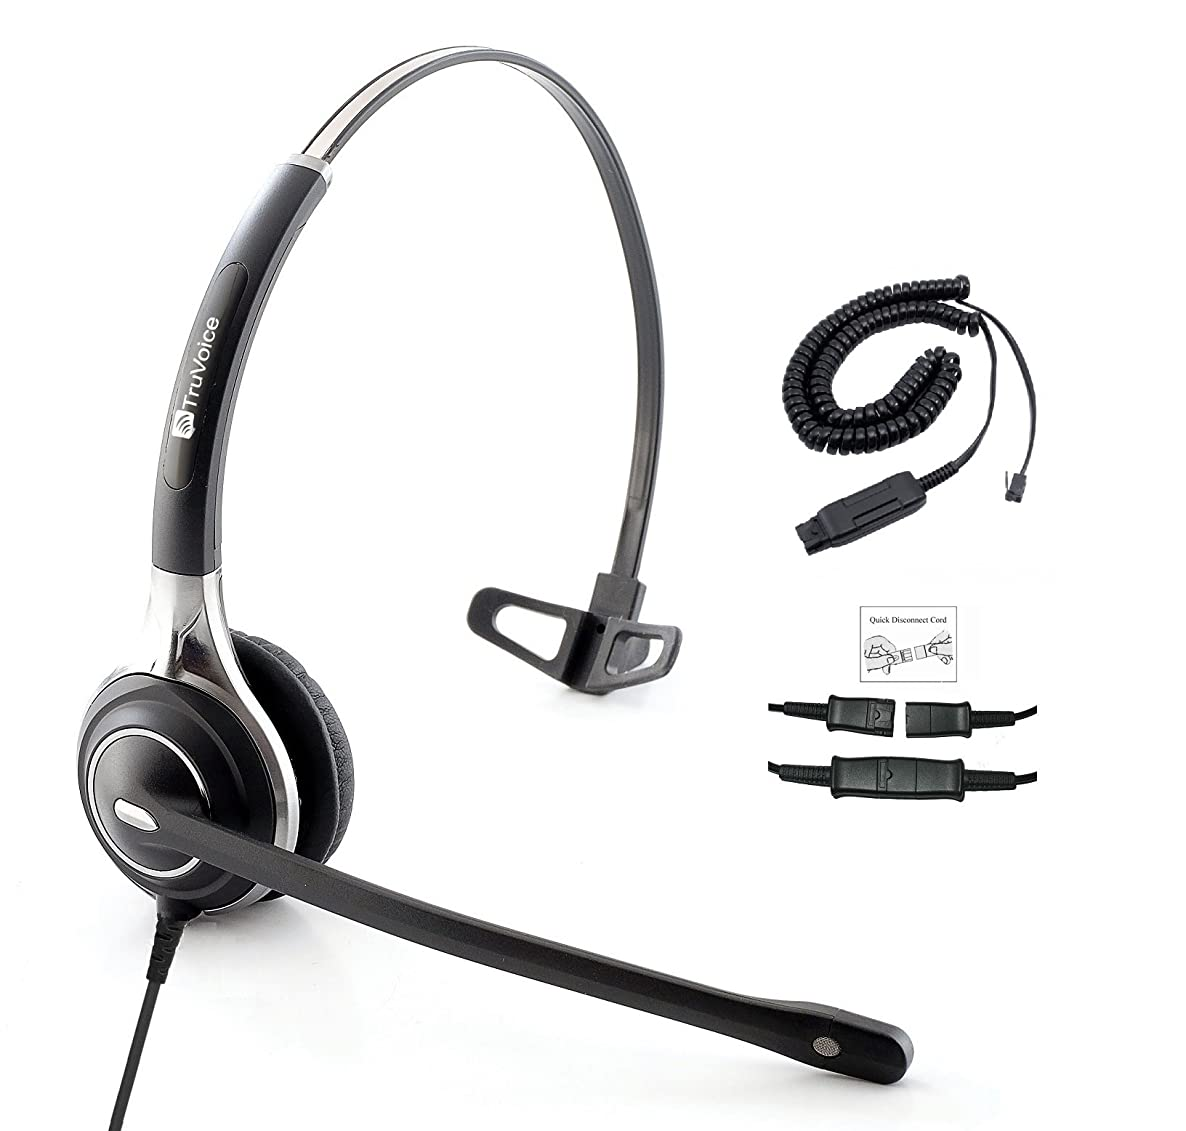 Premium Single Ear Headset with Ultra Noise Canceling MIC & HIS Cable for Avaya IP 1608, 1616, 9601, 9608, 9611, 9611G, 9620, 9621, 9630, 9631, 9640, 9641, 9650, 9670, J139, J169 and J179 Phones